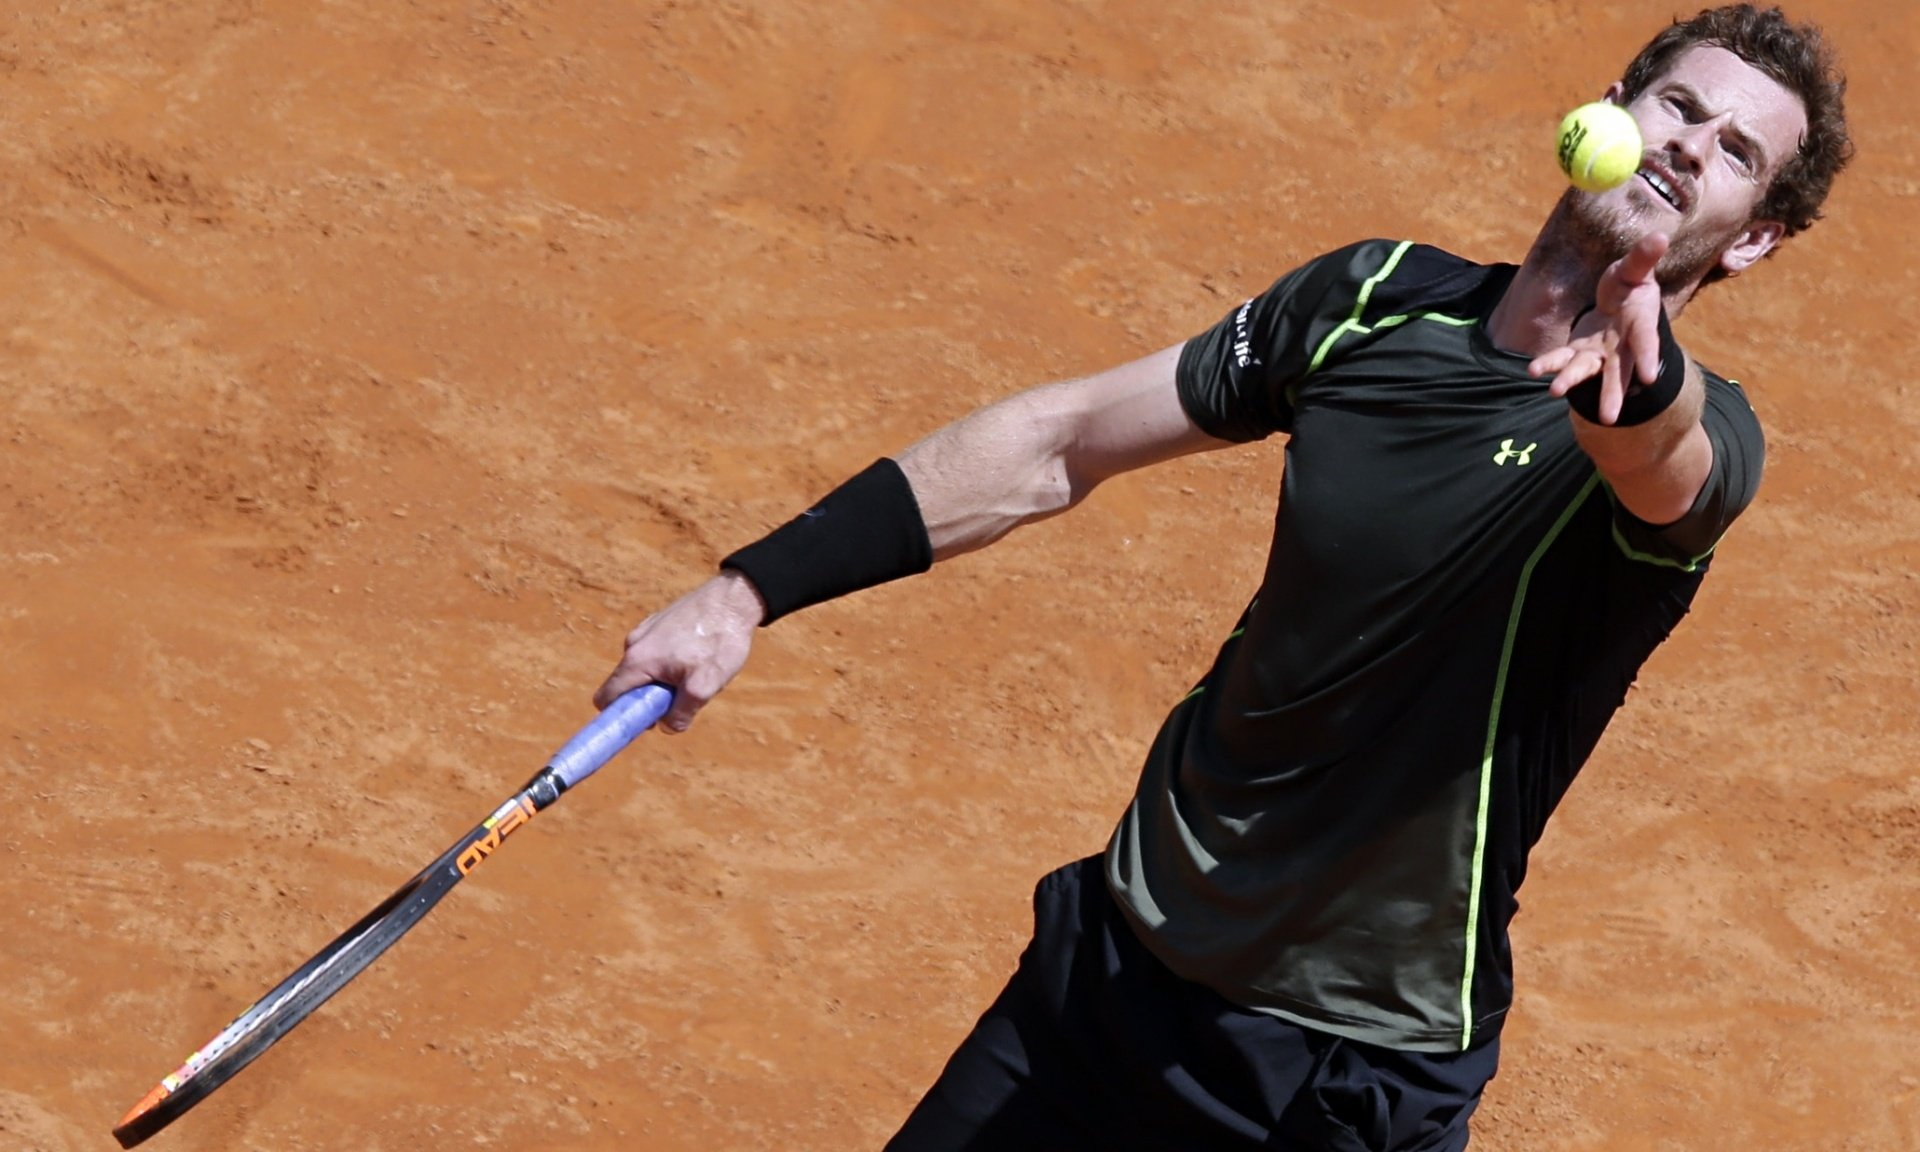 Andy Murray secures 10th straight win on clay, beating Jérémy Chardy in Rome